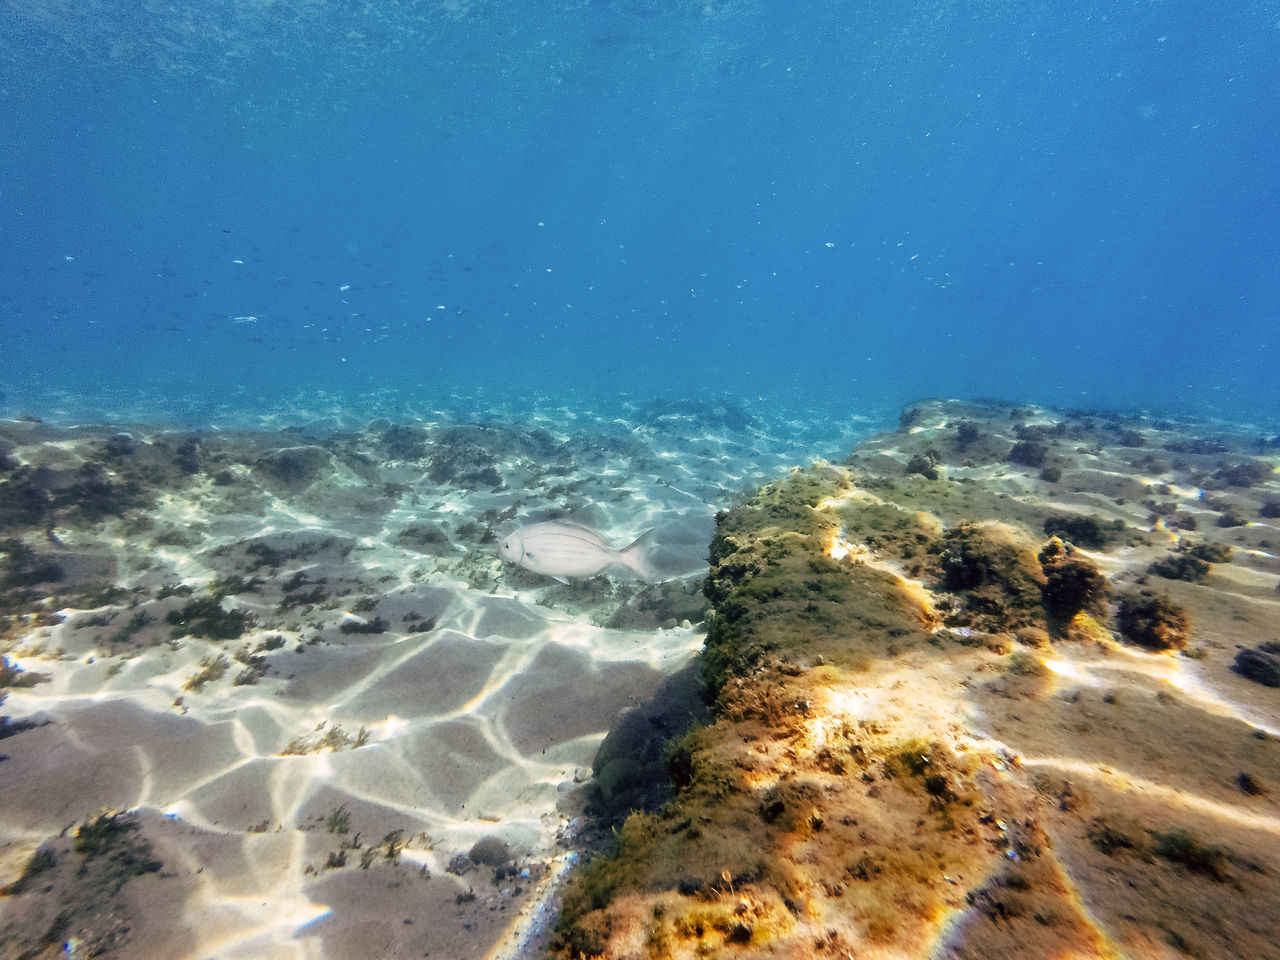 sea, nature, underwater, water, undersea, beauty in nature, no people, blue, day, outdoors